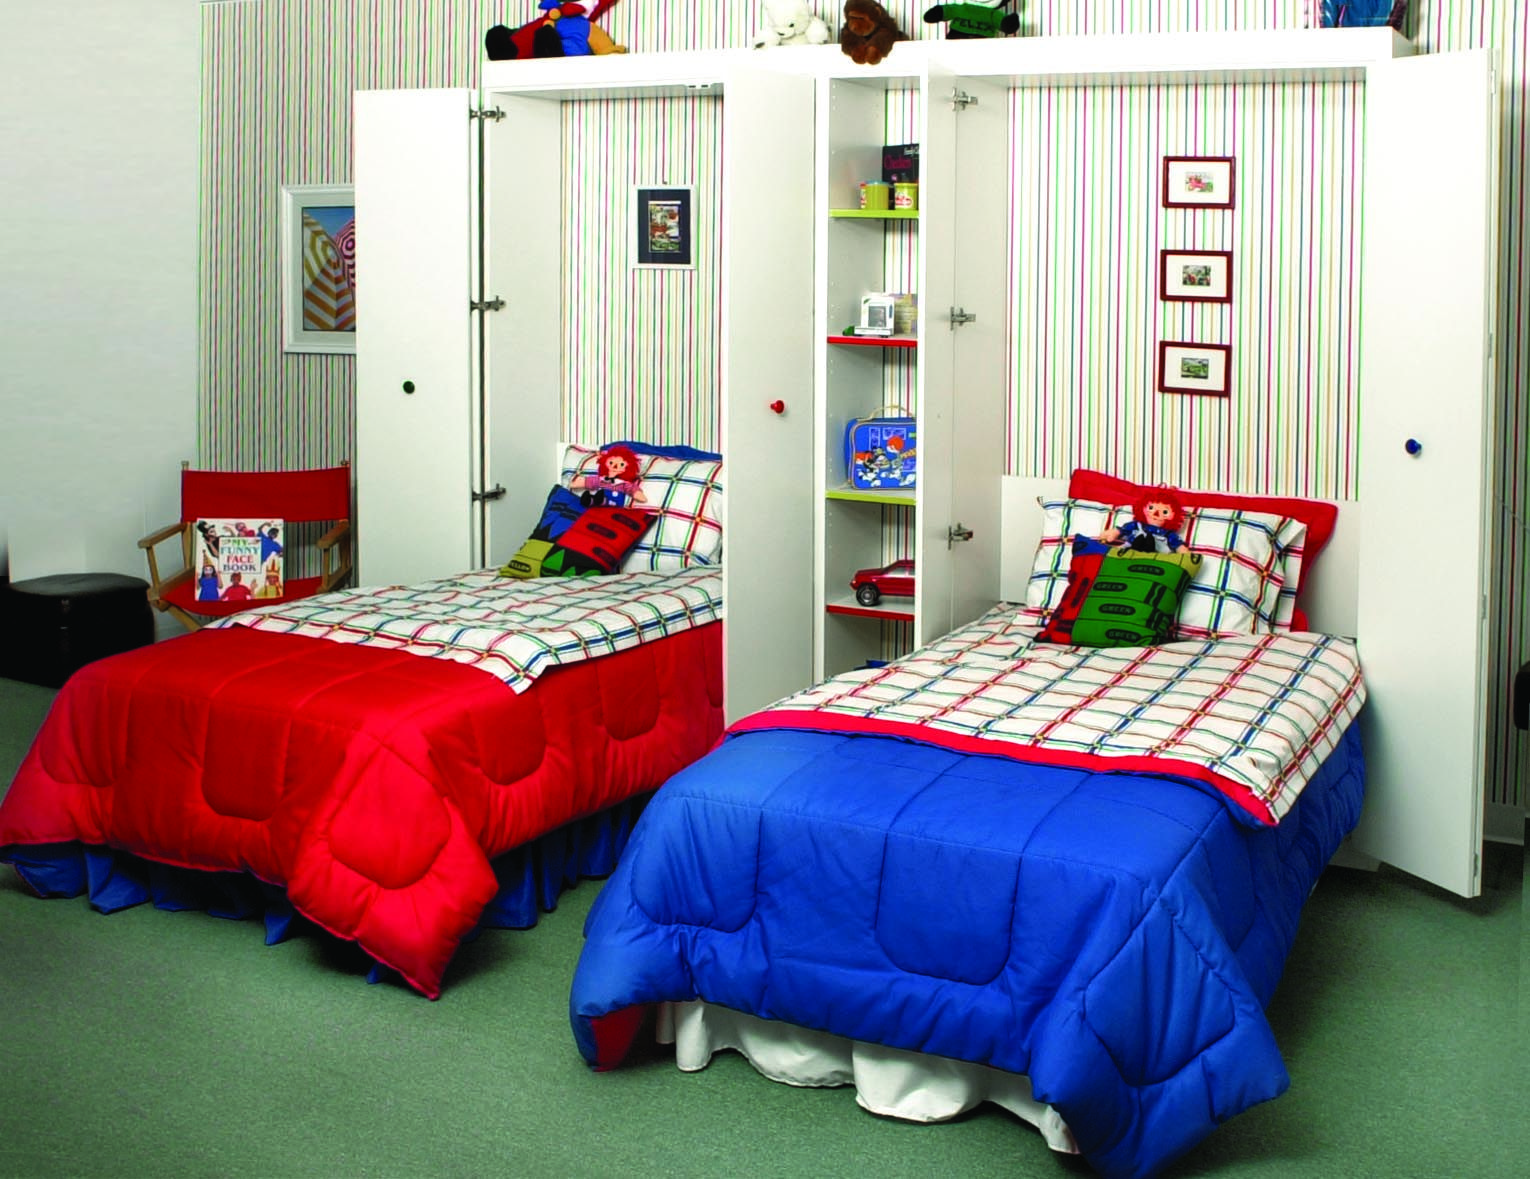 7 Inspiring Kid Room Color Options For Your Little Ones: Space-Saving Kids Beds